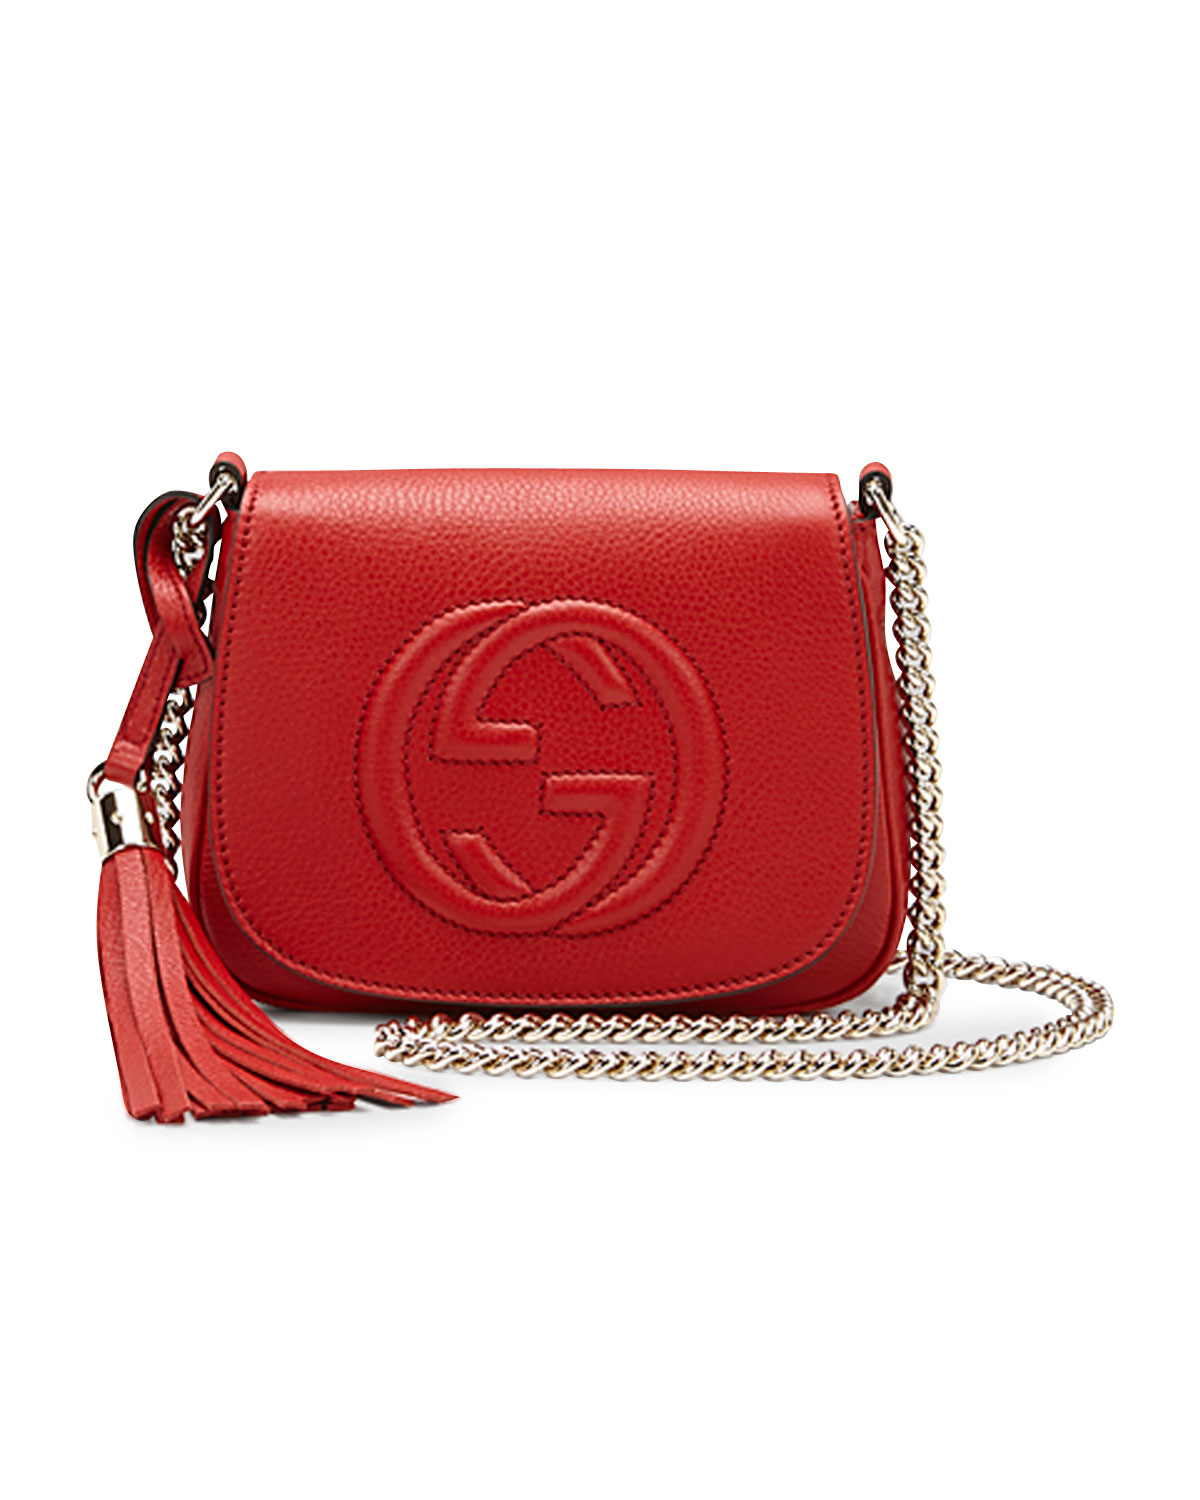 Soho Leather Chain Crossbody Bag Red